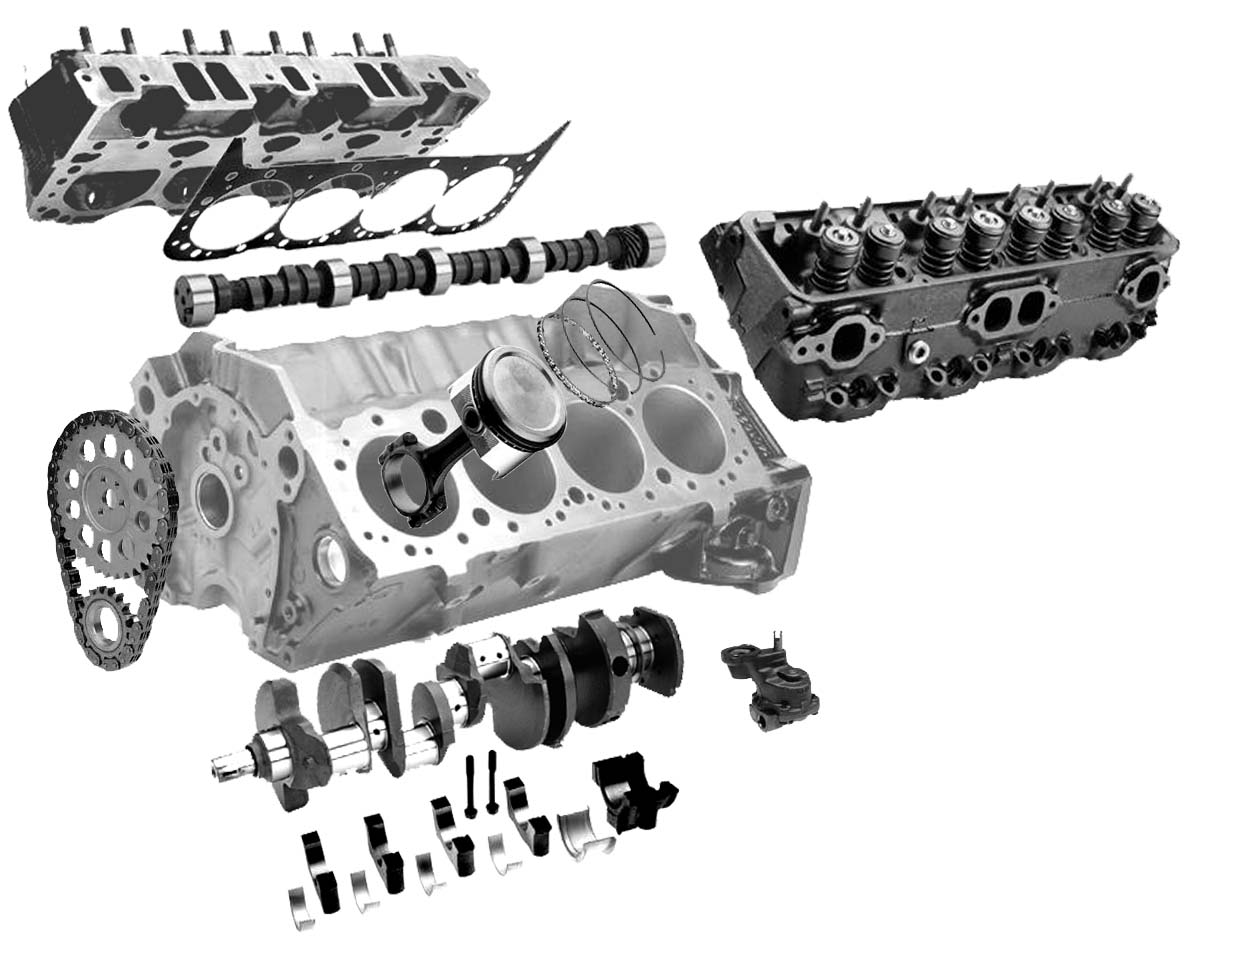 engine spare parts list | Carnmotors.com